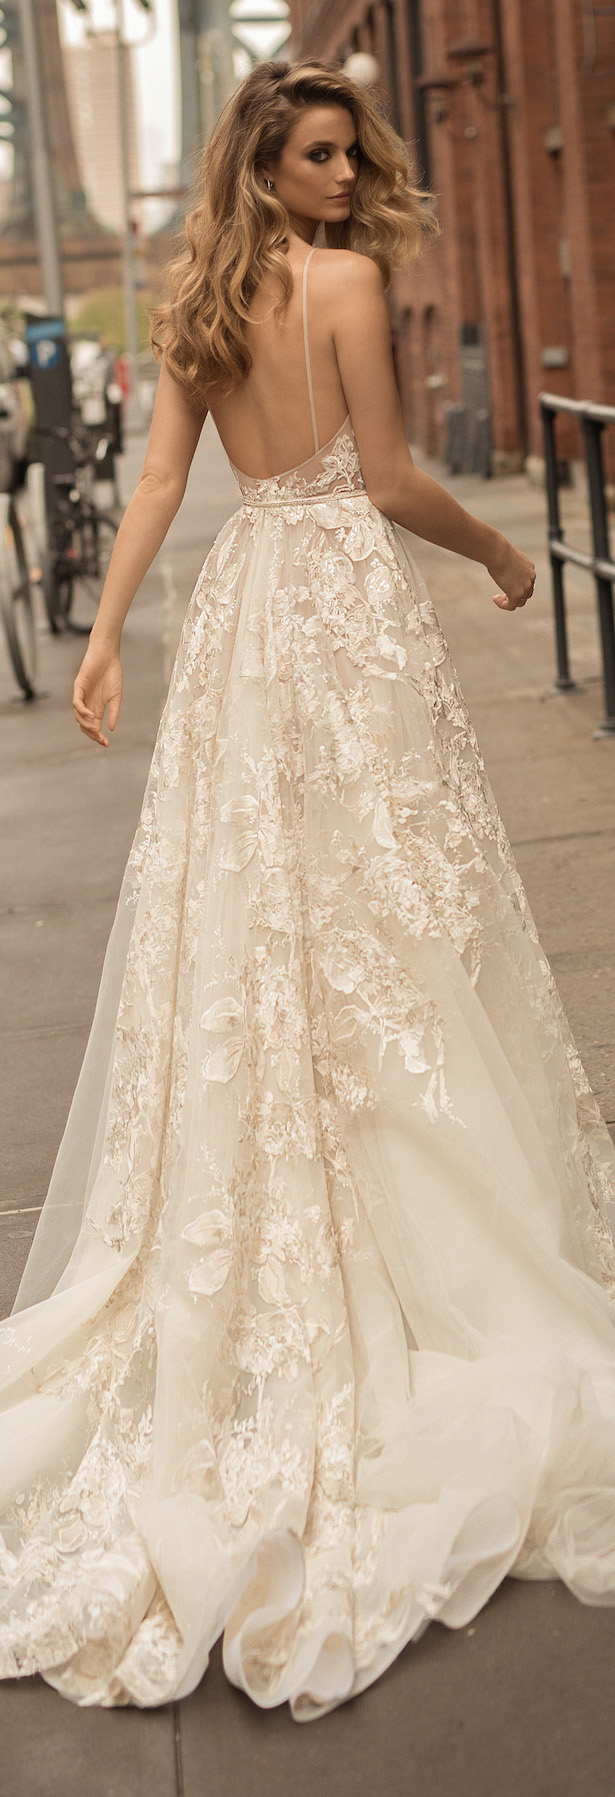 Berta Wedding Dress Collection Spring 2018 Belle The